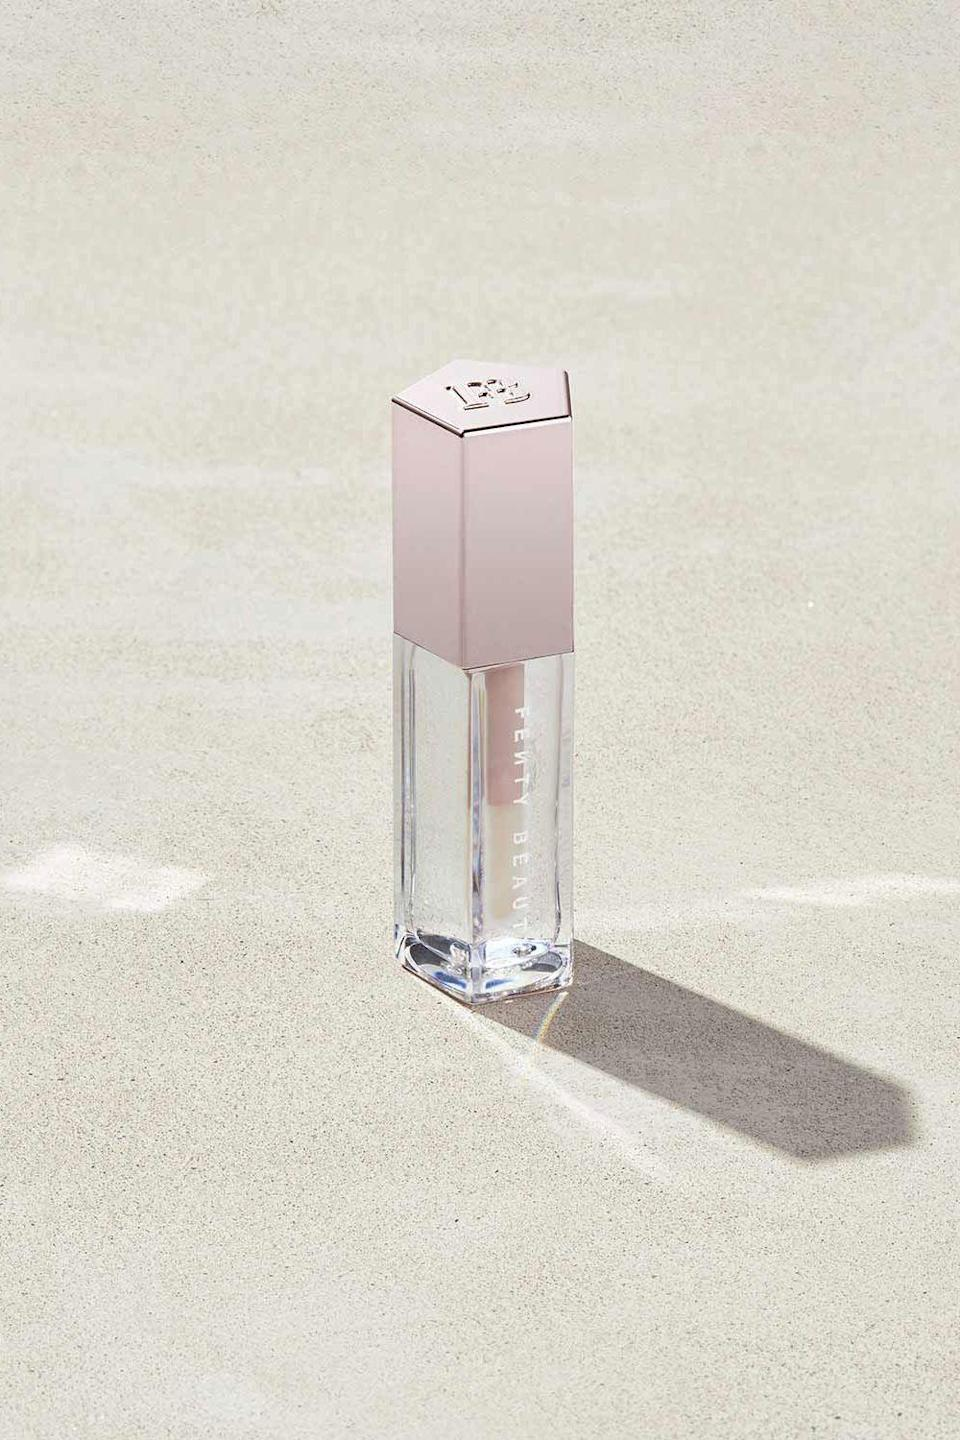 """<p><strong>Fenty Beauty</strong></p><p>fentybeauty.com</p><p><a href=""""https://go.redirectingat.com?id=74968X1596630&url=https%3A%2F%2Fwww.fentybeauty.com%2Fgloss-bomb-universal-lip-luminizer%2FFB50001.html%3Fdwvar_FB50001_color%3DFB5016%26cgid%3Dmakeup-lip-gloss&sref=https%3A%2F%2Fwww.cosmopolitan.com%2Fstyle-beauty%2Fbeauty%2Fg34399952%2Ffenty-beauty-sale-october-2020%2F"""" rel=""""nofollow noopener"""" target=""""_blank"""" data-ylk=""""slk:SHOP IT"""" class=""""link rapid-noclick-resp"""">SHOP IT </a></p><p><strong><del>$19</del> $12.82 (33% off)</strong></p><p>Available in a handful of colors, the Gloss Bomb Lip Luminizer will give your lips a nice, glossy finish. This formula is infused with shea butter to keep your lips hydrated.</p>"""